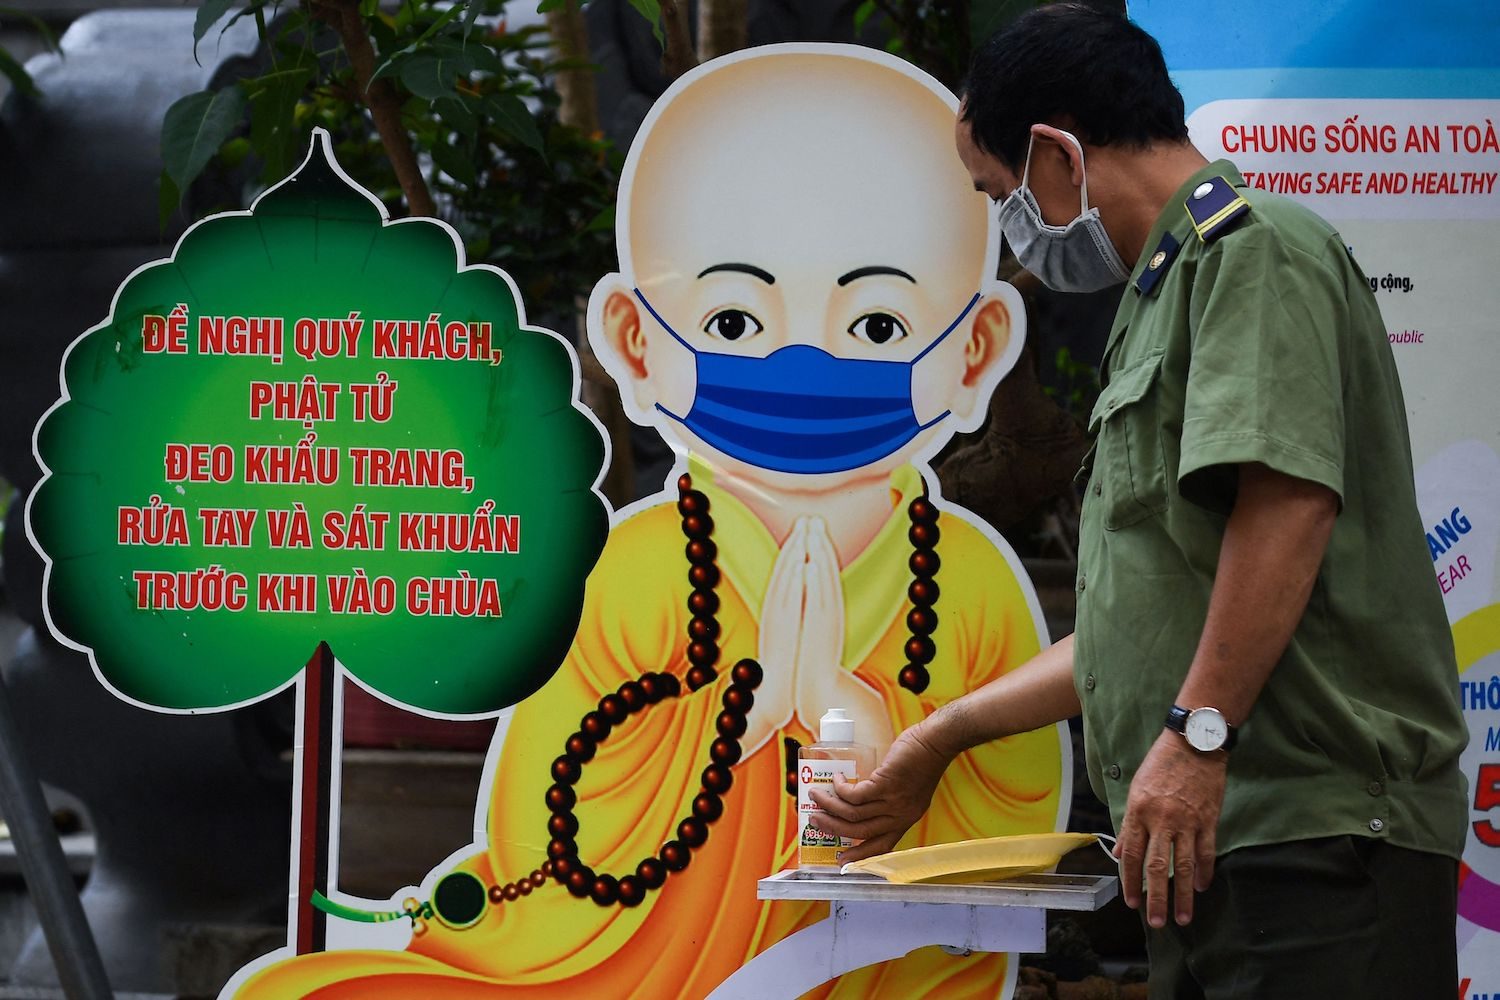 A security officer uses hand sanitiser at the Quan Su pagoda in front of an illustration of a masked monk in Hanoi on Wednesday, when Buddhists across the region celebrated Vesak Day. (AFP Photo)